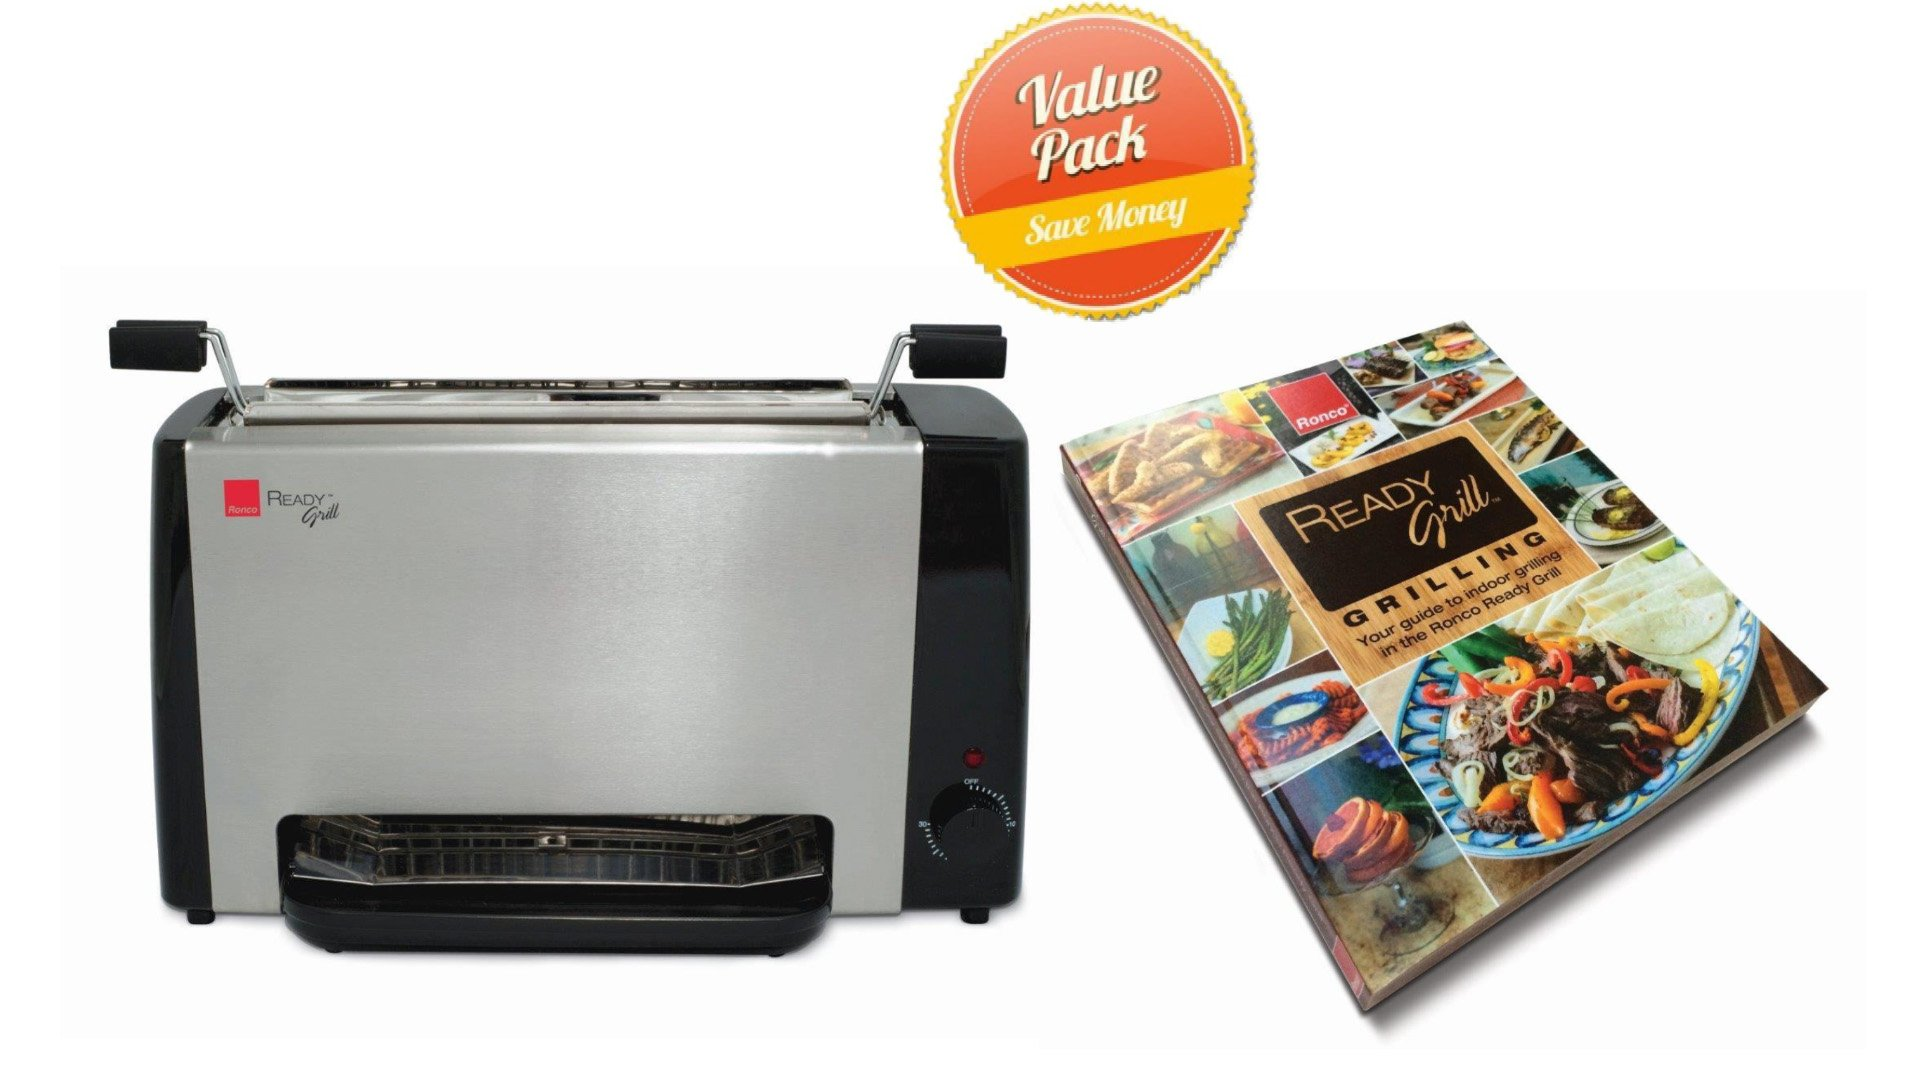 Ronco RG1001BLGEN Ready Grill, Black, With the Ready Grill Cookbook